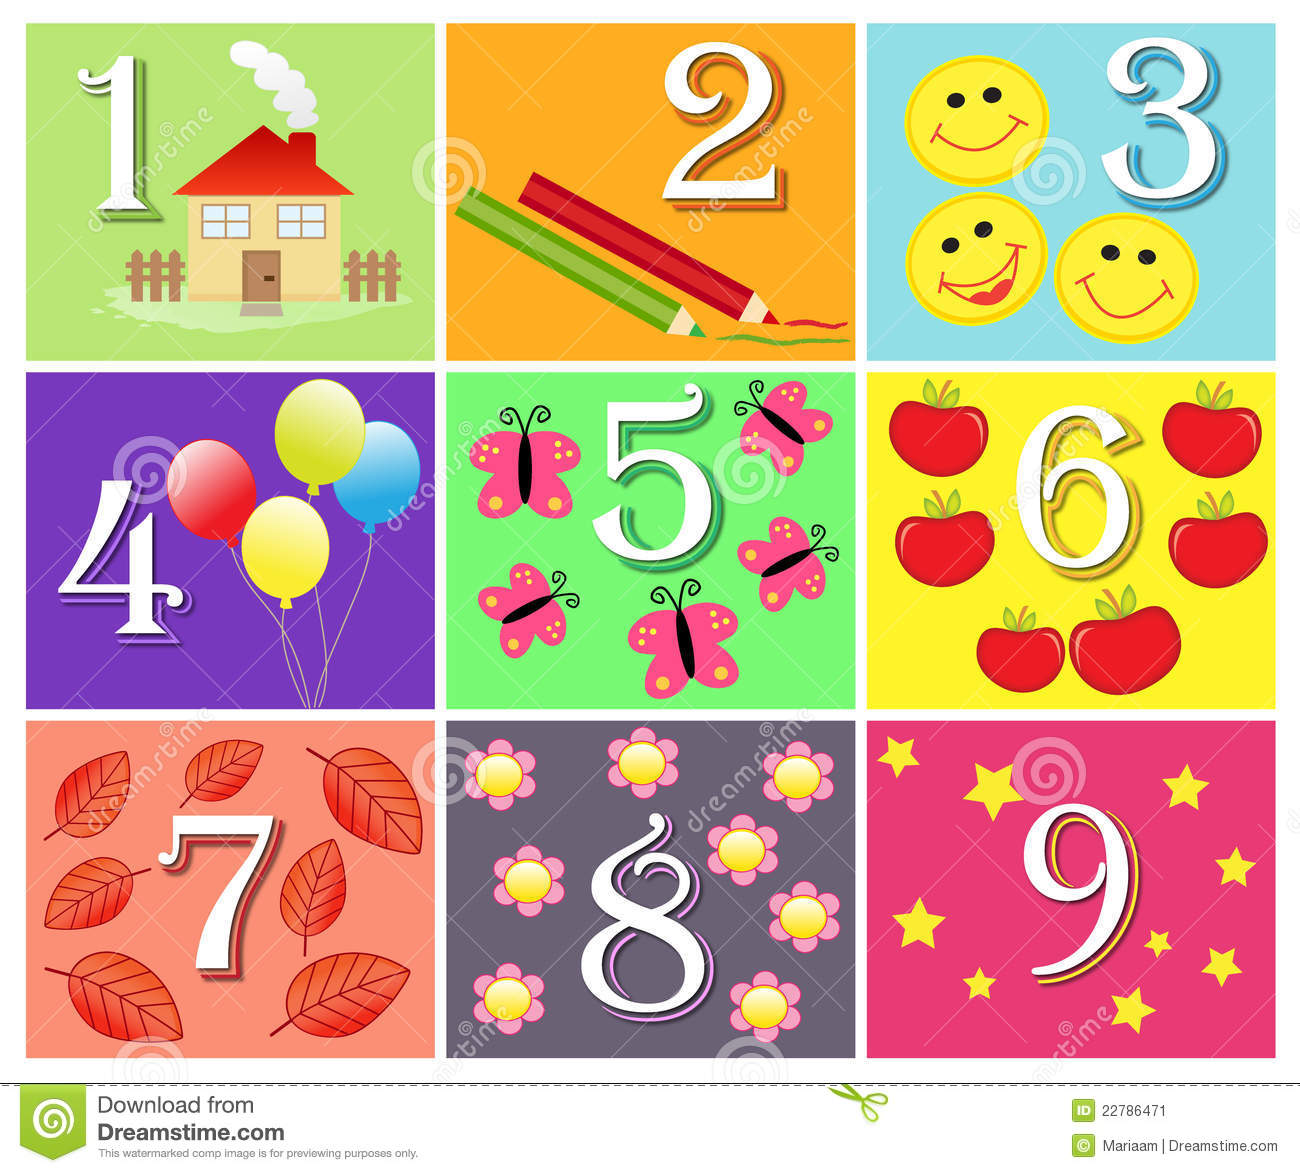 Counting Game For Children With The Numbers 1 To 9